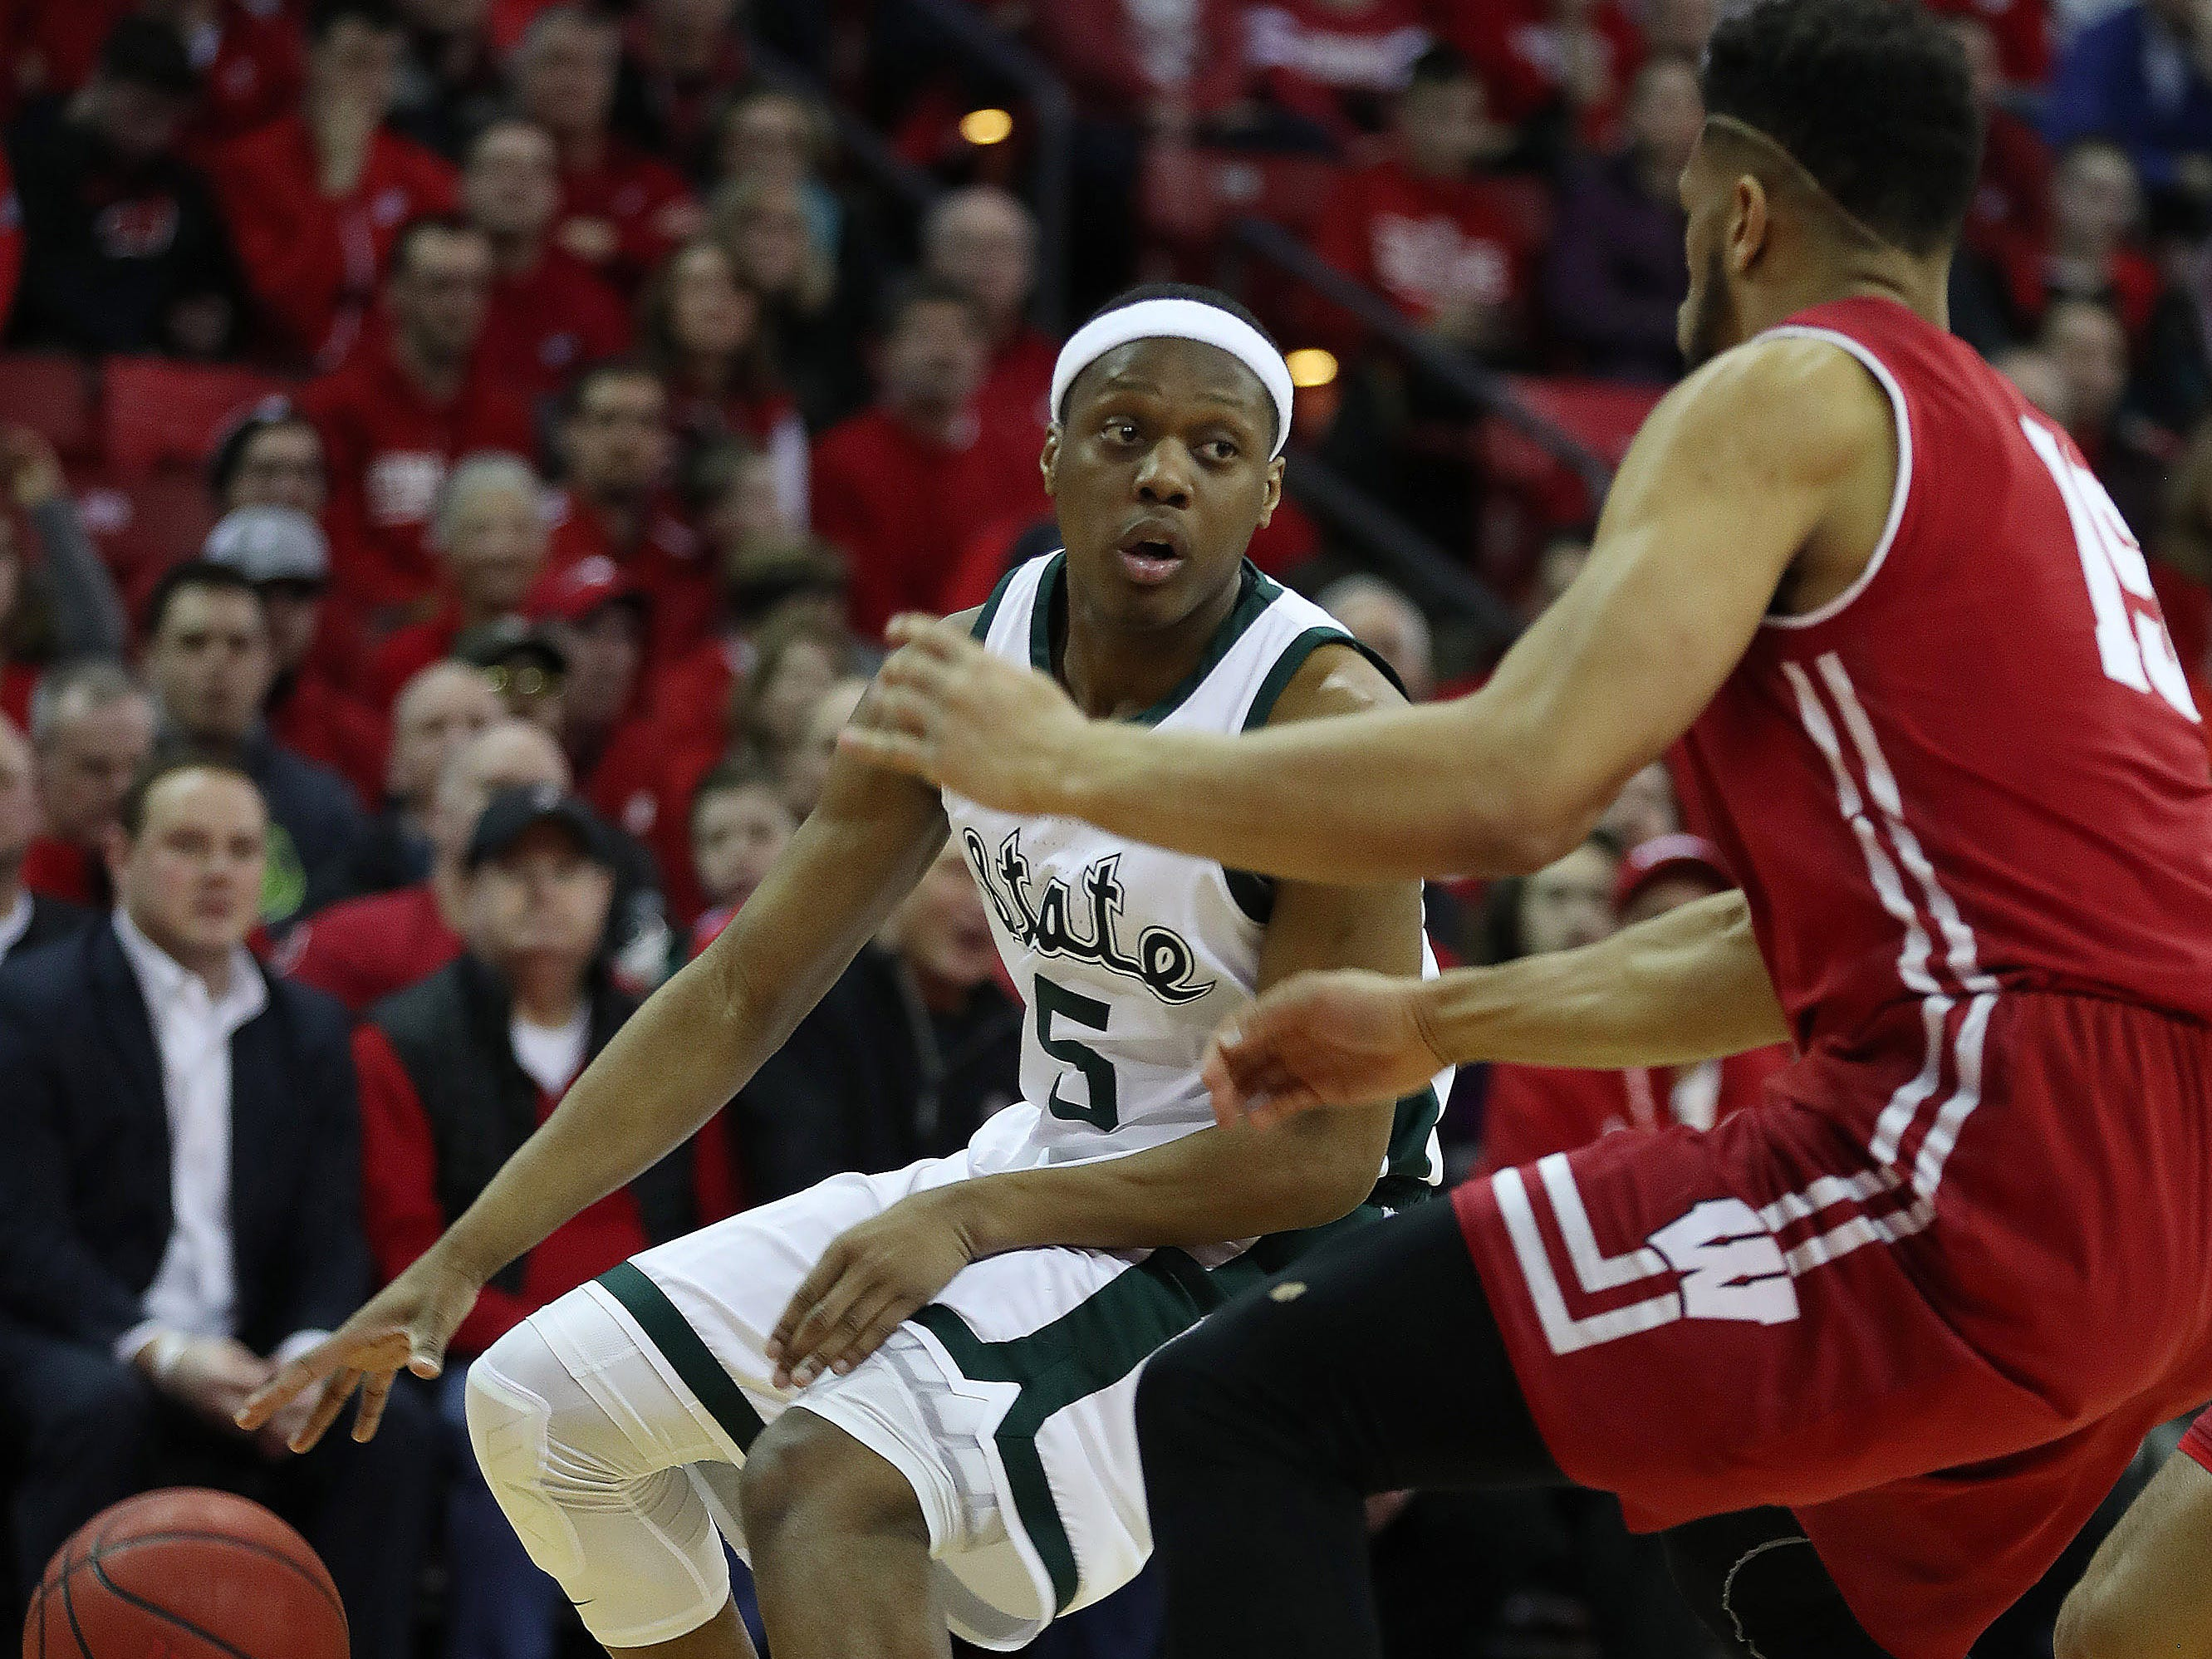 Michigan State Spartans guard Cassius Winston (5) dribbles the ball as Wisconsin Badgers forward Charles Thomas (right) defends during the first half at the Kohl Center.